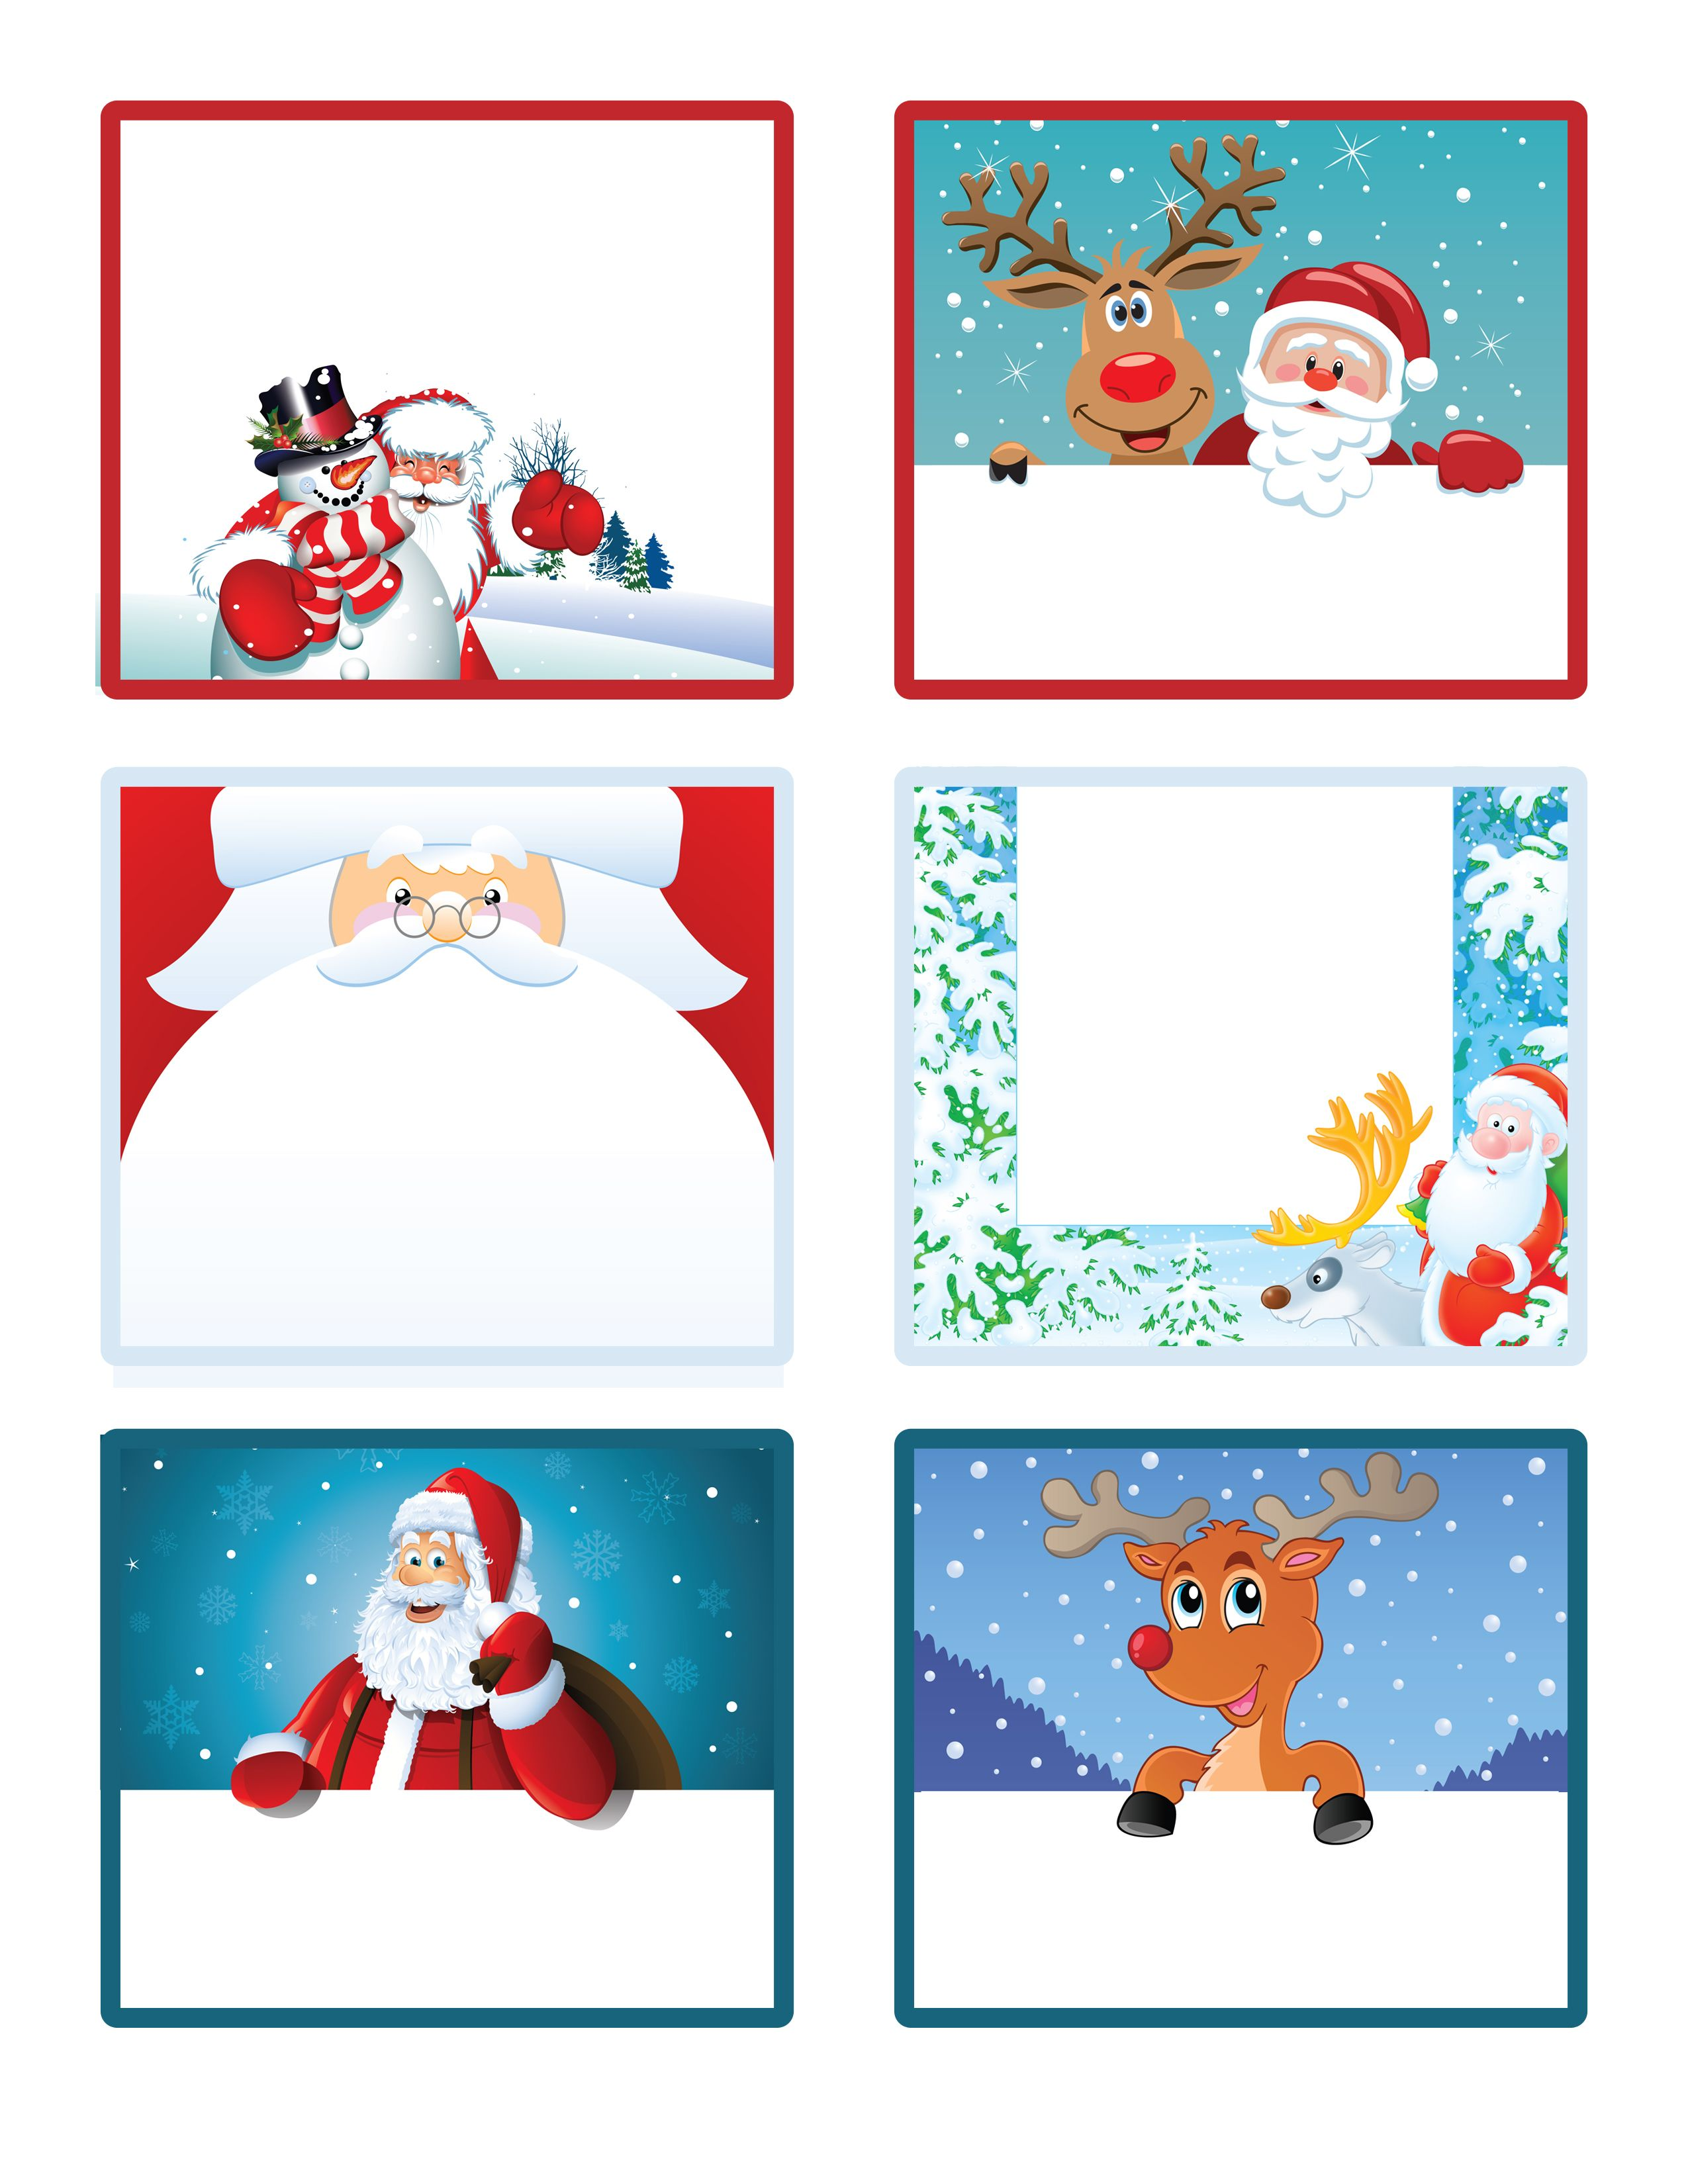 easy free letter from santa magical package teaching december